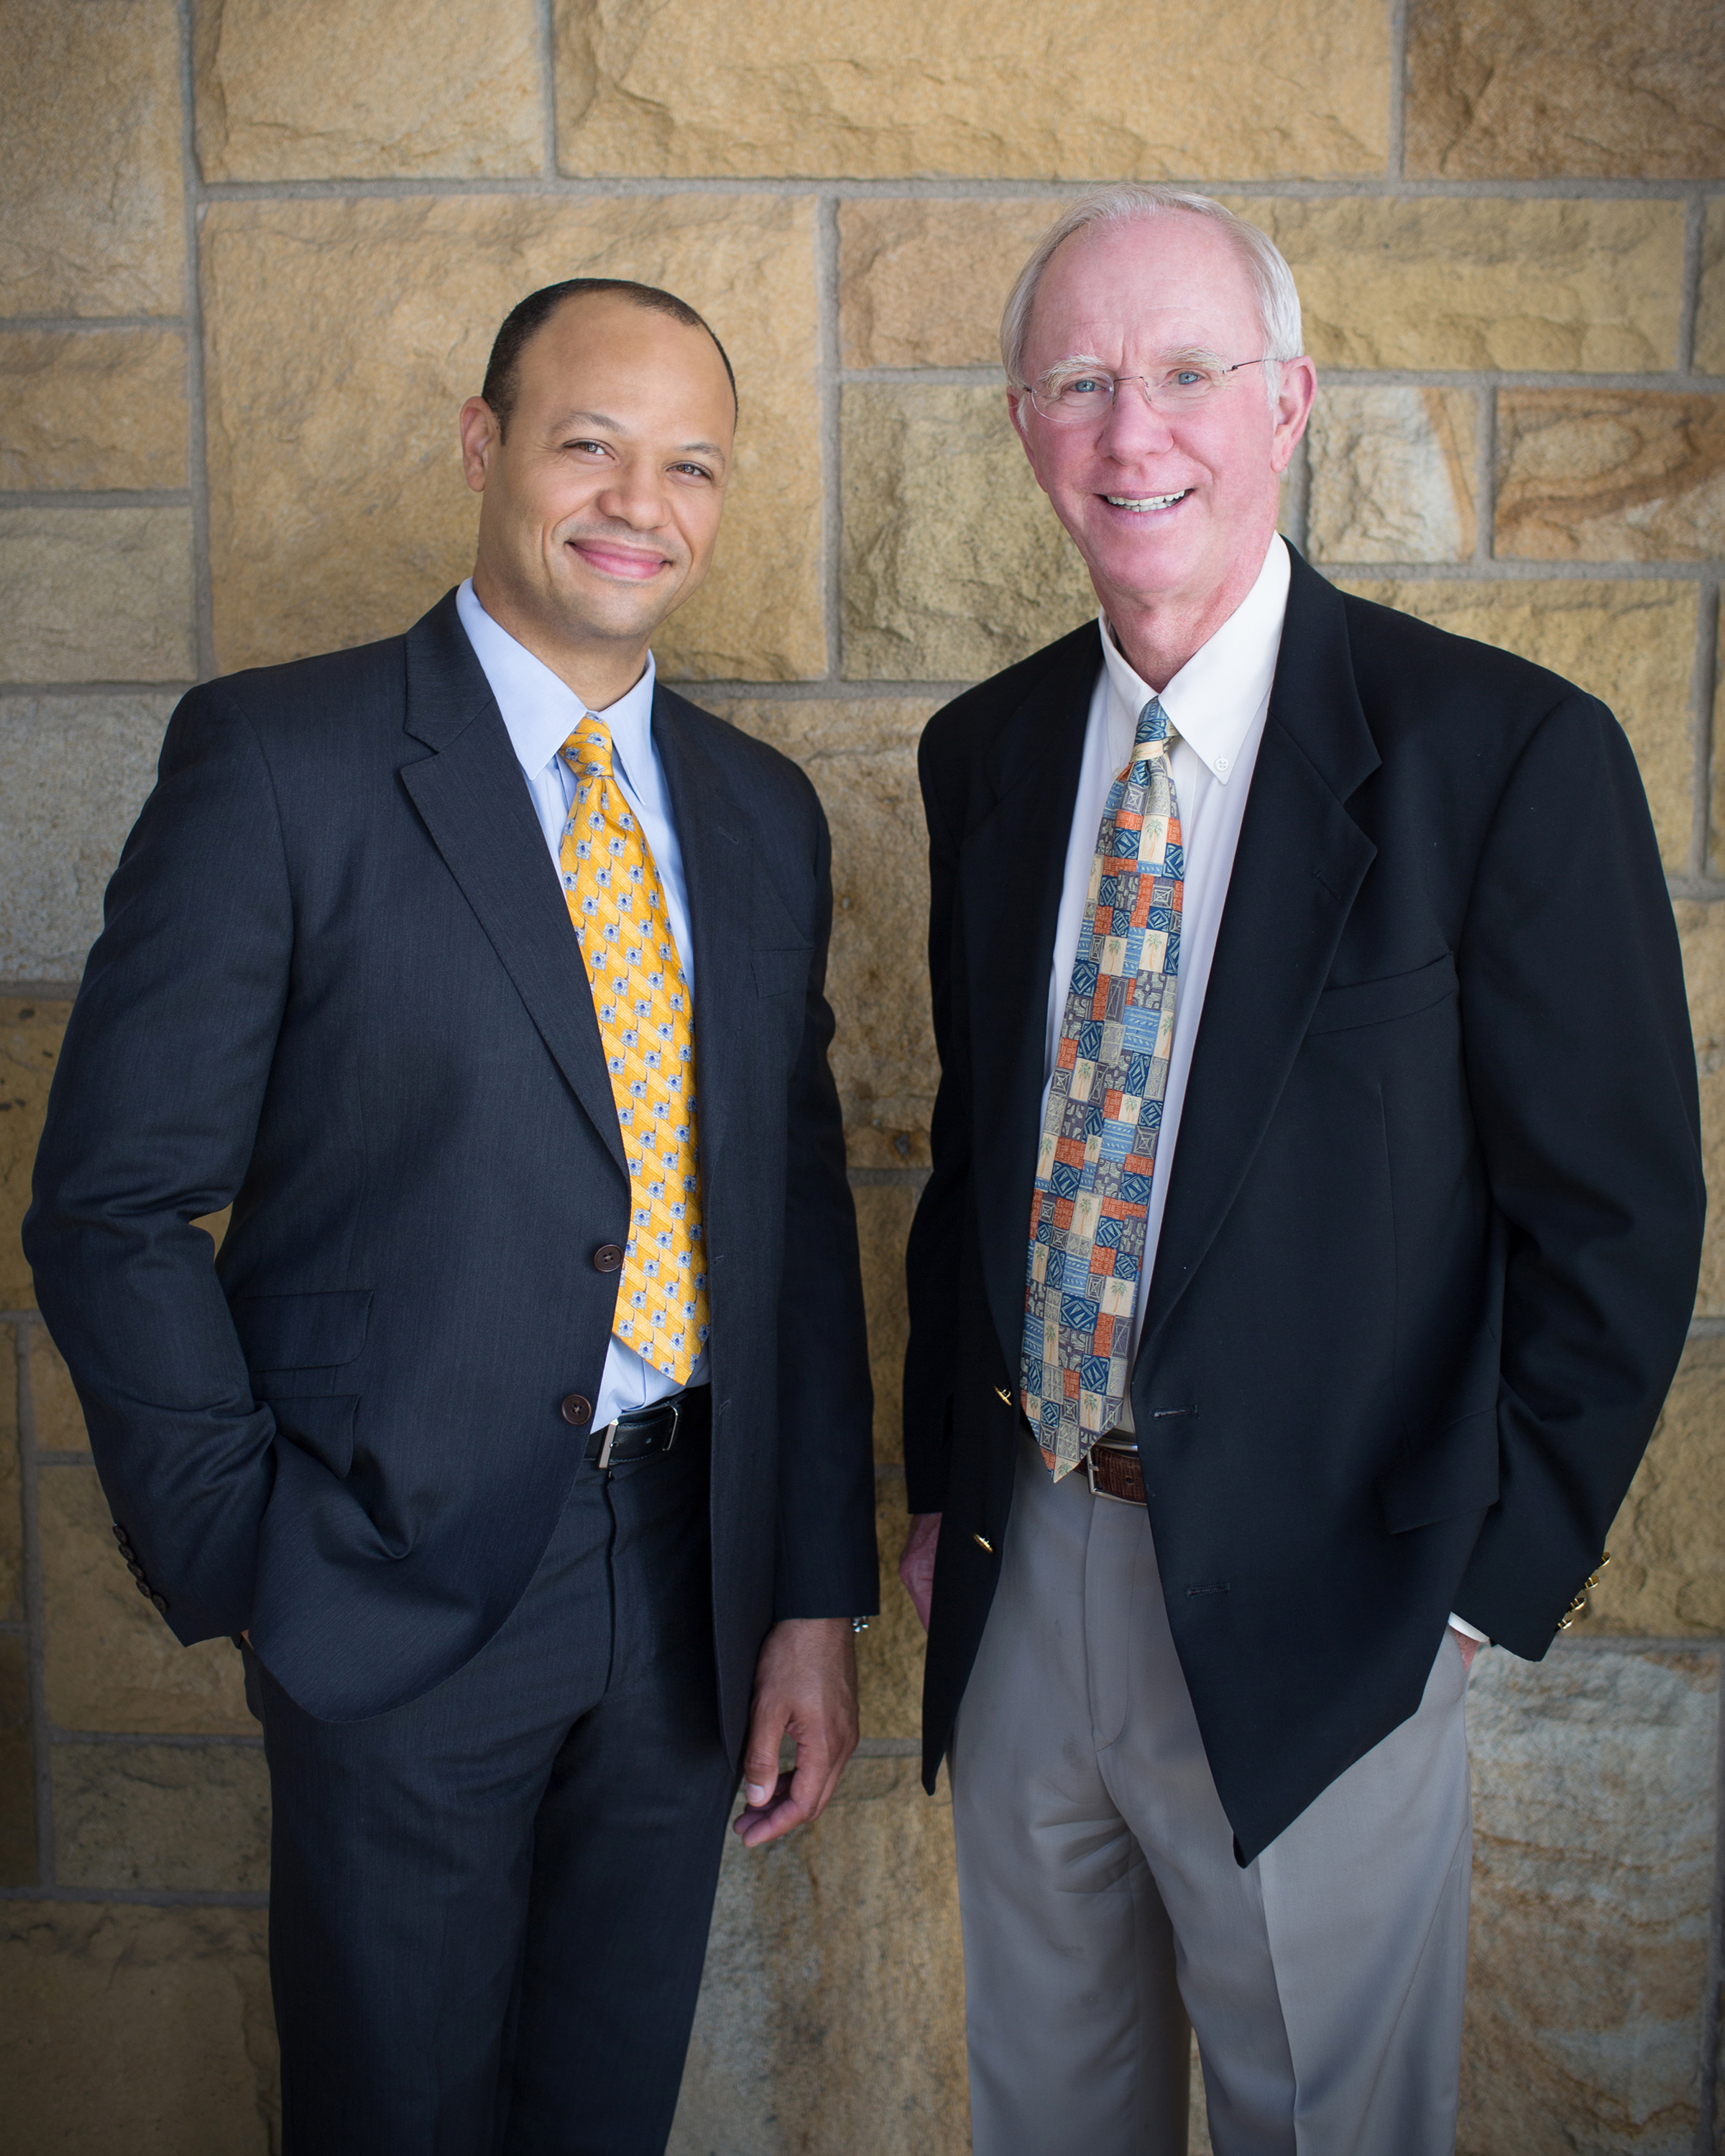 Santa Barbara Plastic Surgeons Wesley G. Schooler, MD, FACS and David L. Buchanan, MD, FACS